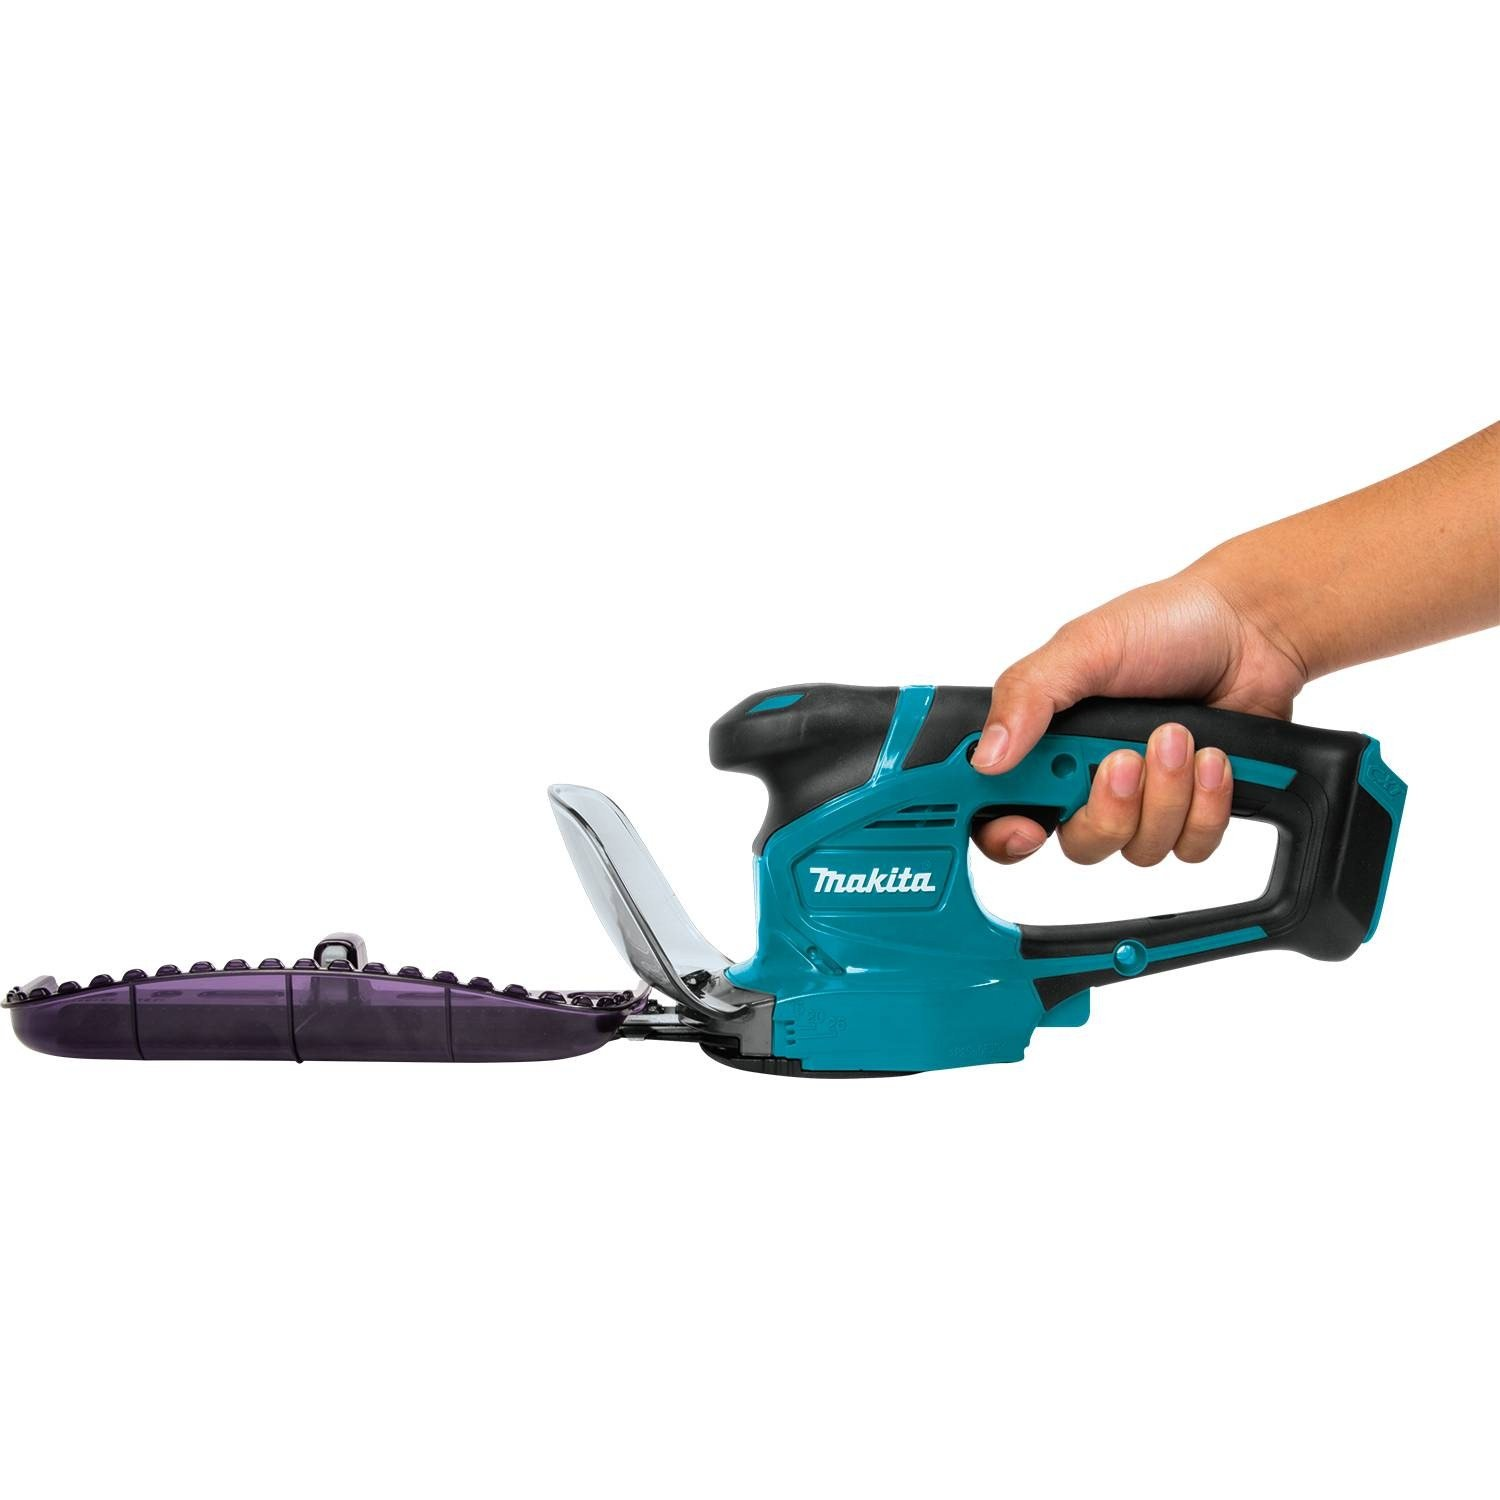 Makita HU06Z 12V max CXT Lithium-Ion Cordless Hedge Trimmer, Tool Only by Makita (Image #5)